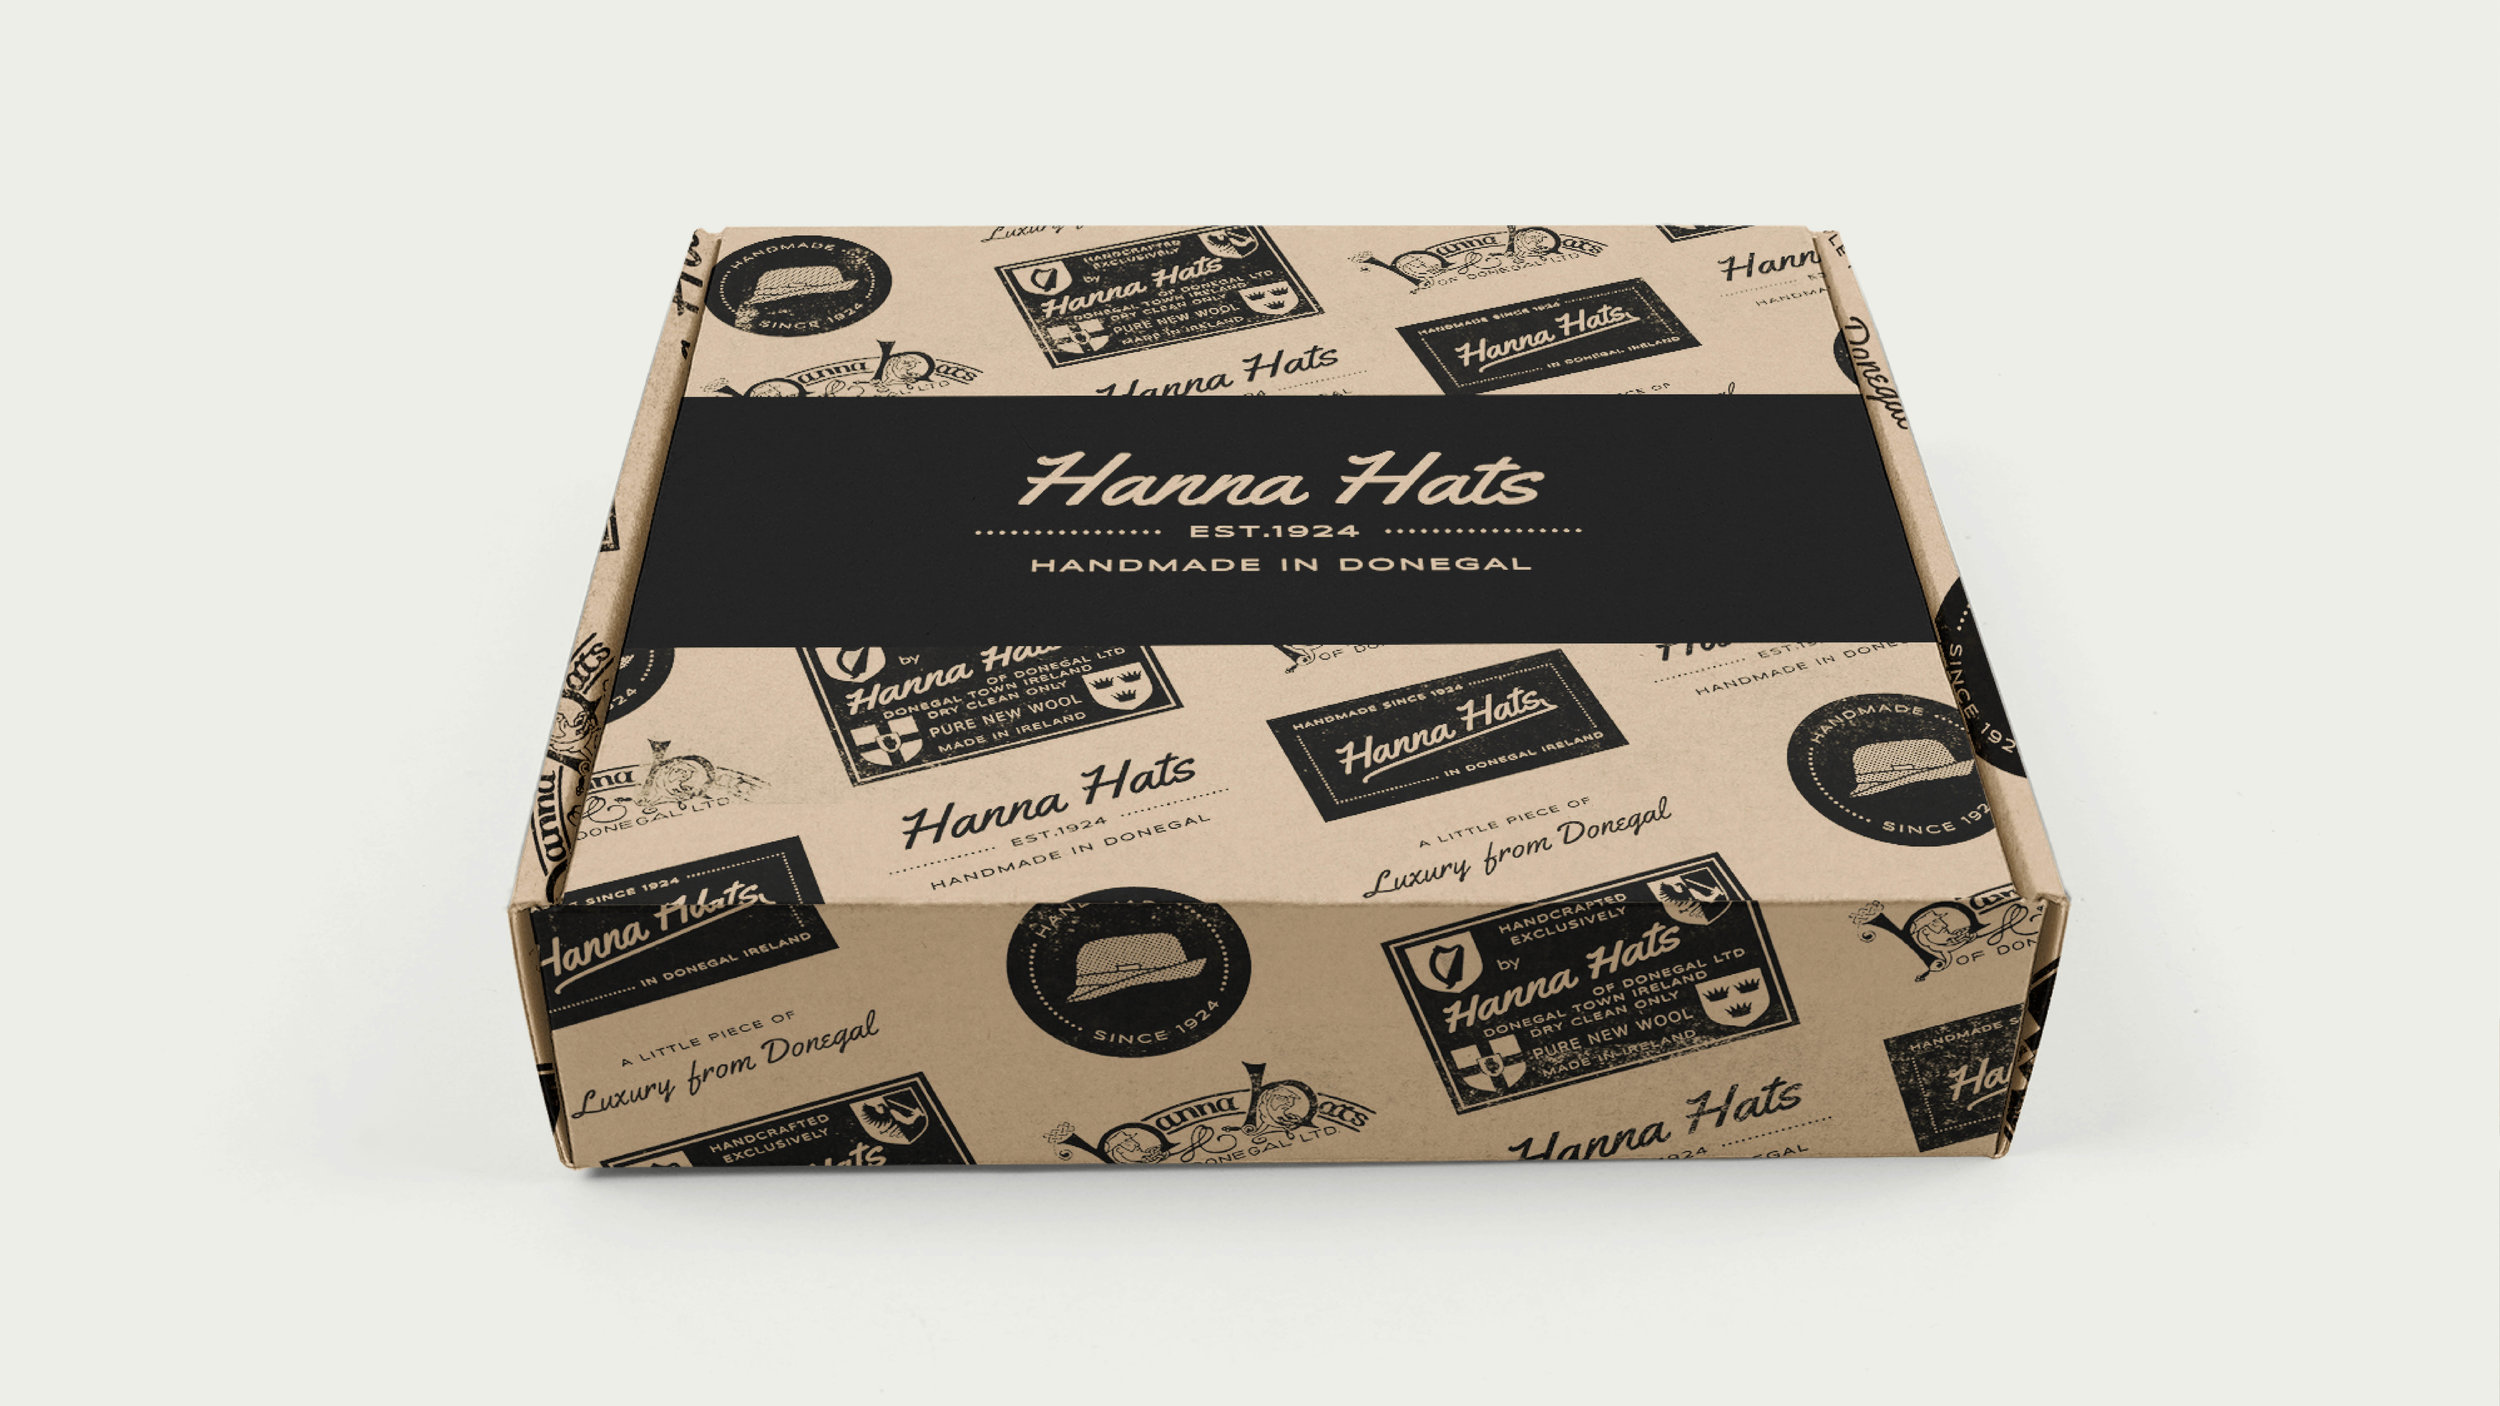 The third option is incorporating the retro logos charting the history of the brand printed in black onto the box. We really love this one too, it's unique and personalised to Hanna Hats and would make a stylish choice.